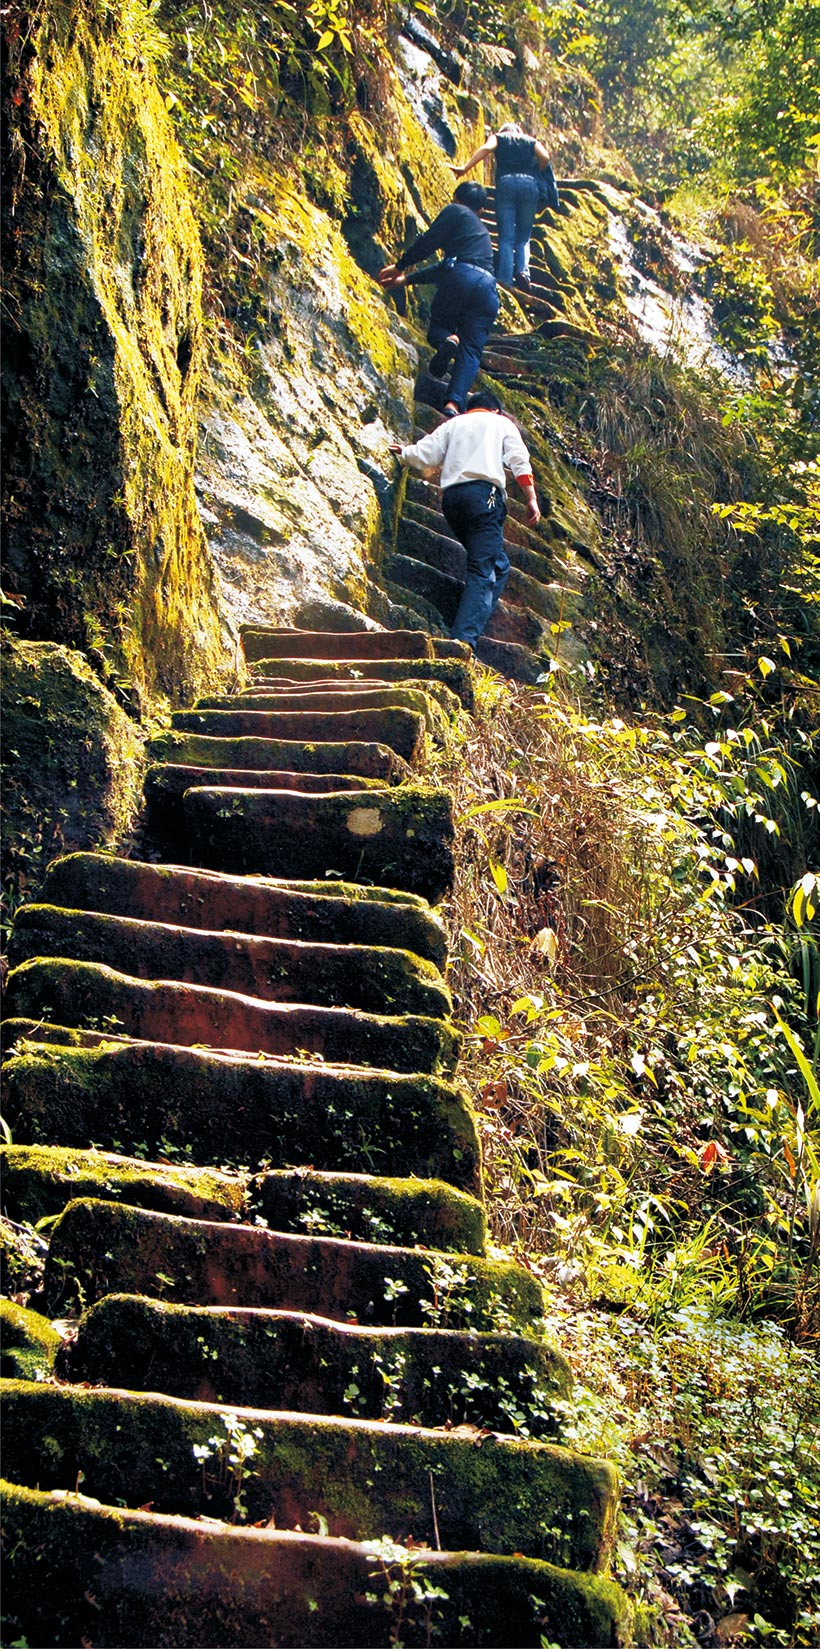 Love-story-happened-in-Simian-Mountain---Steps-to-the-Heaven,-photo-by-Zhang-Shuren